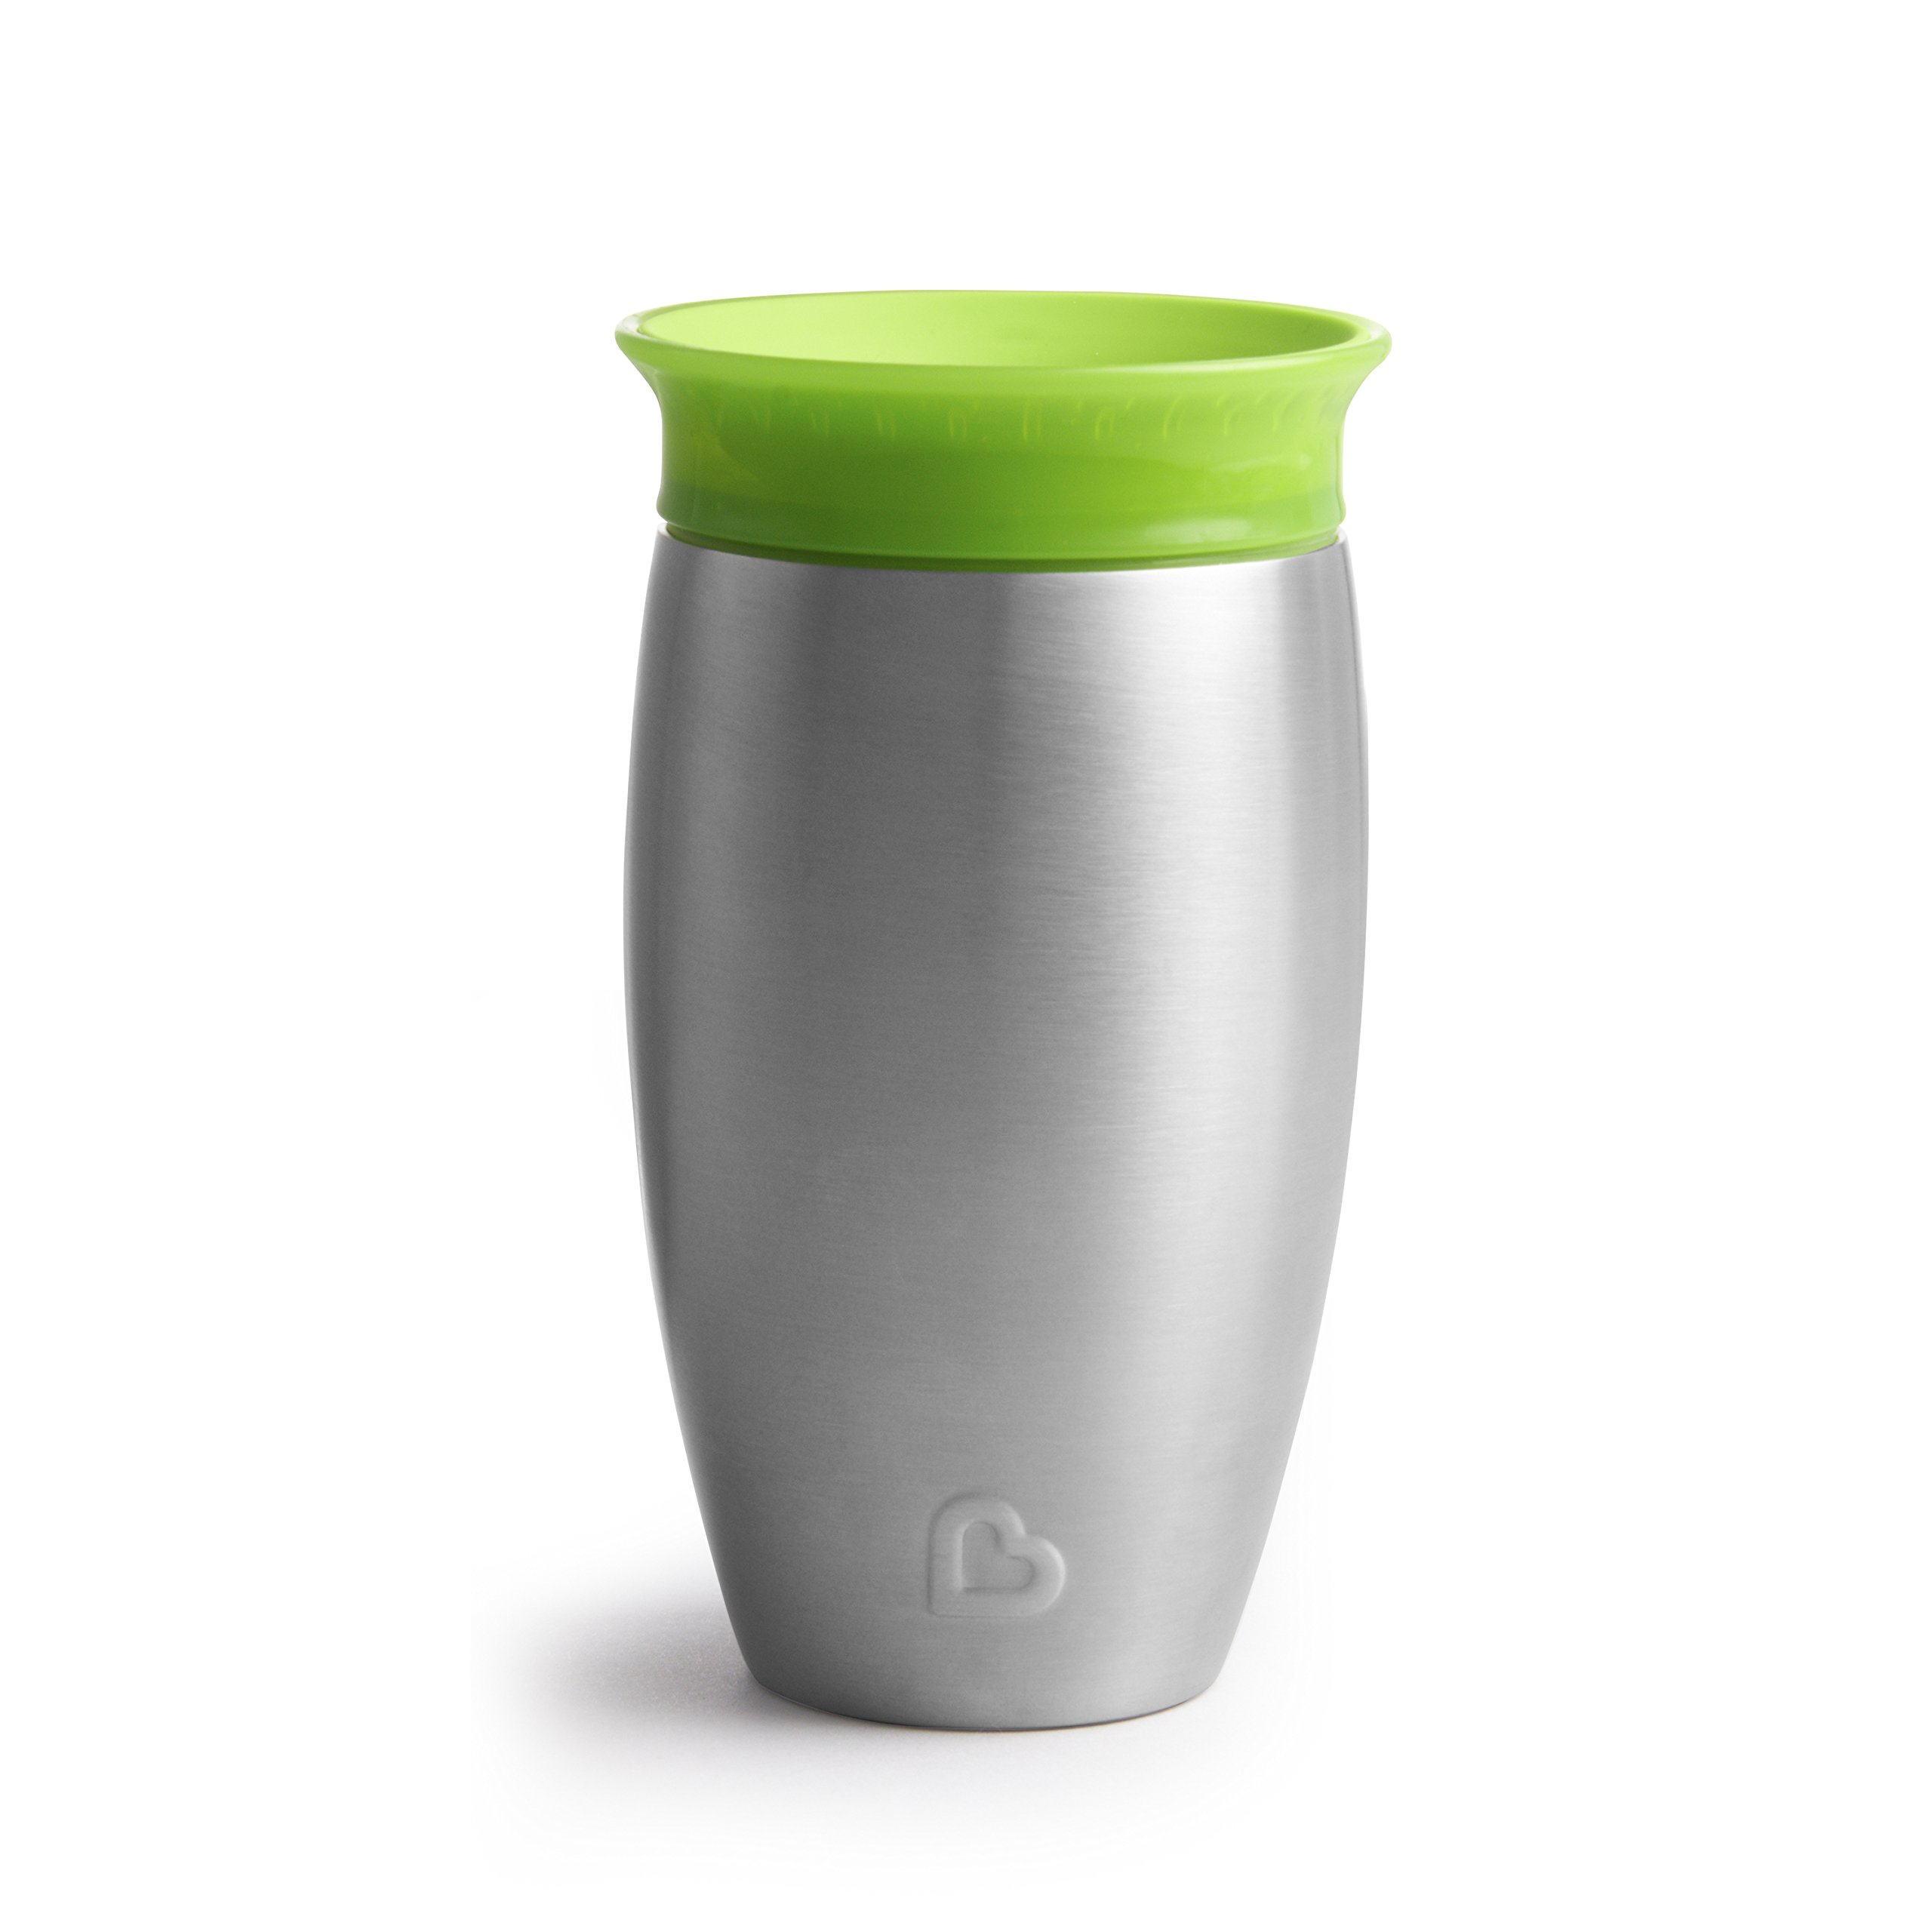 Munchkin Miracle Stainless Steel 360 Sippy Cup, Green, 10 Ounce by Munchkin (Image #5)